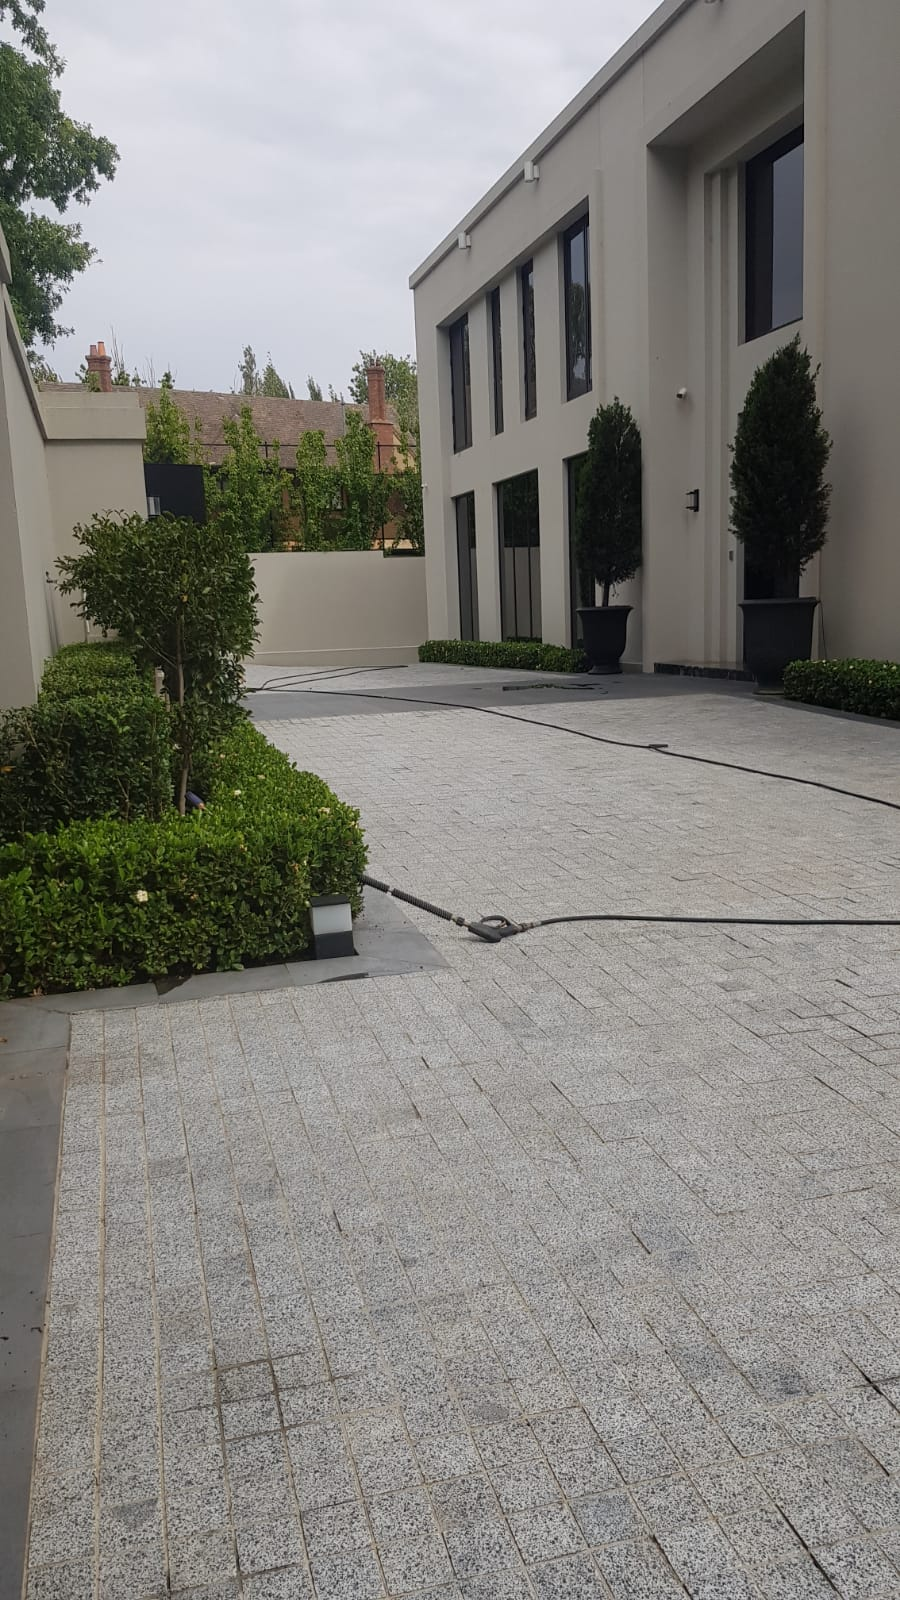 Office building pressure wash cleaning Linlithgow st Toorak